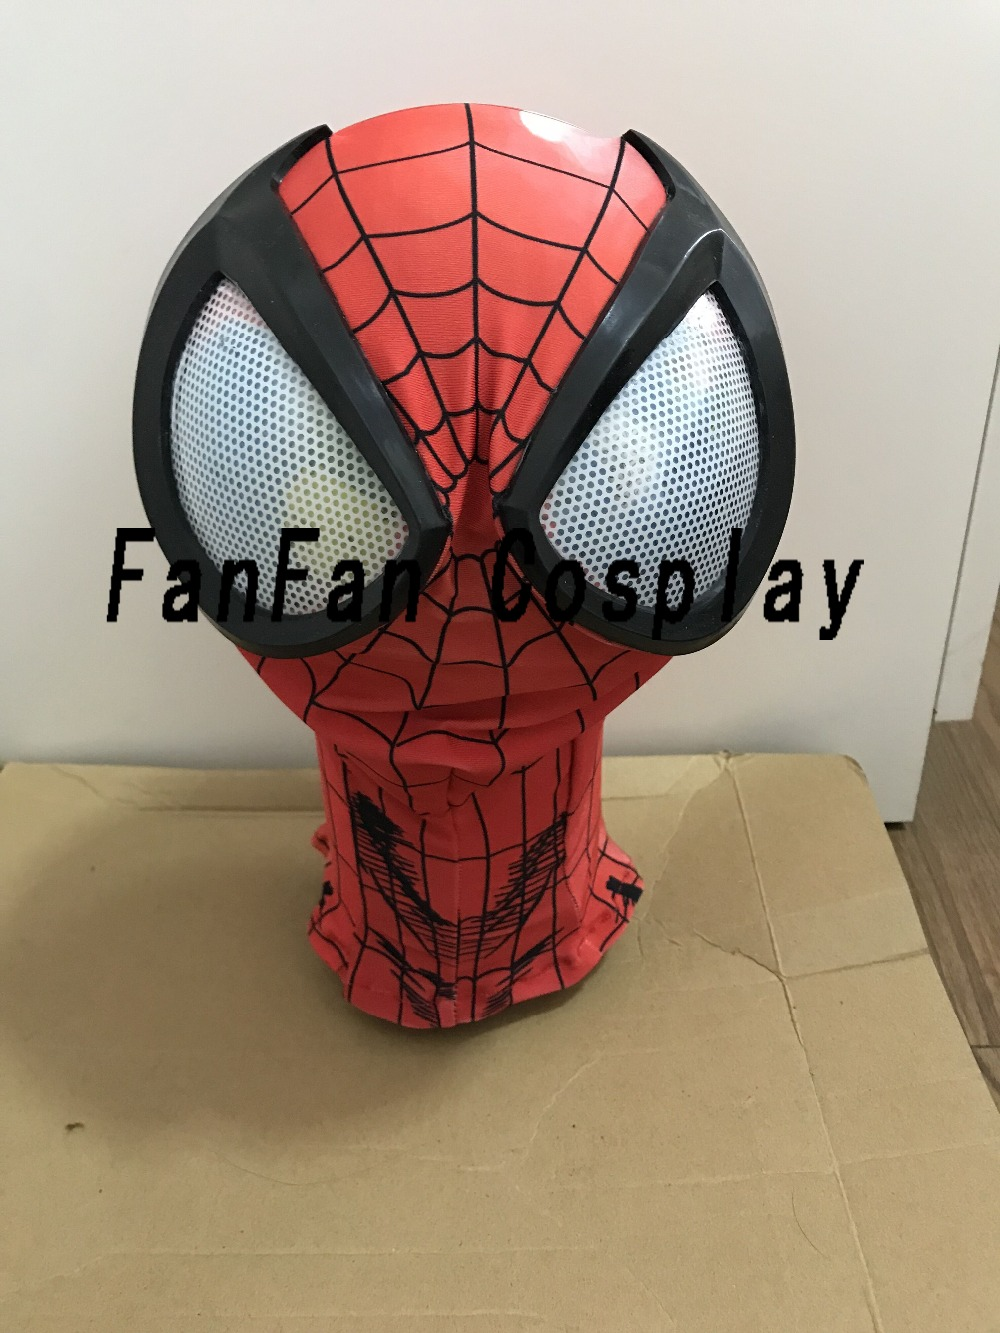 3D Spiderman Masks Big Spiderman Lenses Spiderman Mask for Halloween Party Costume Props Adult Hot Sale-in Boys Costume Accessories from Novelty & Special Use